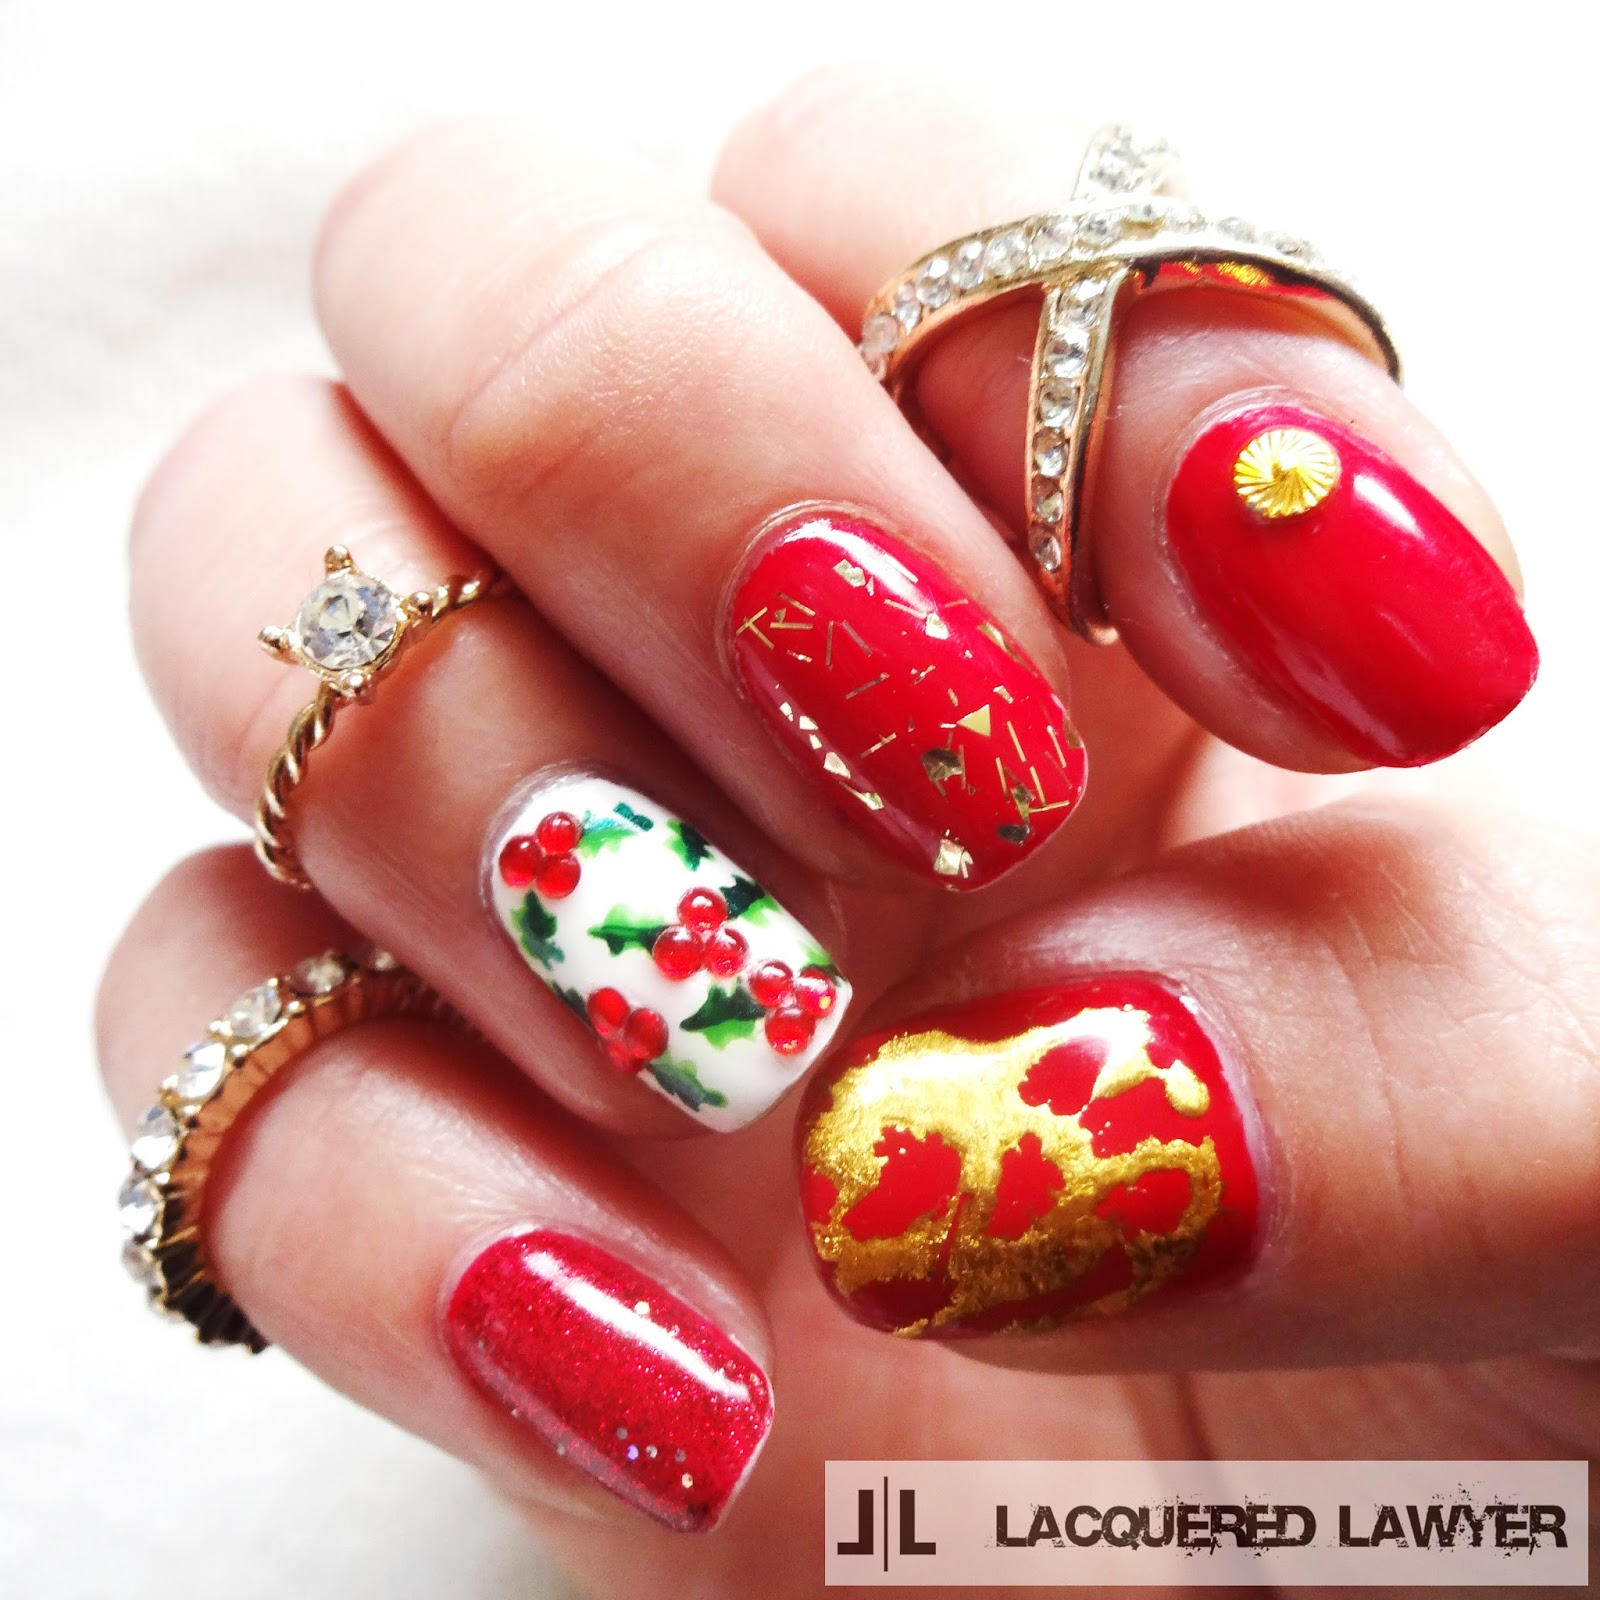 Lacquered lawyer nail art blog holly berry holly berry holly christmas nail art prinsesfo Gallery